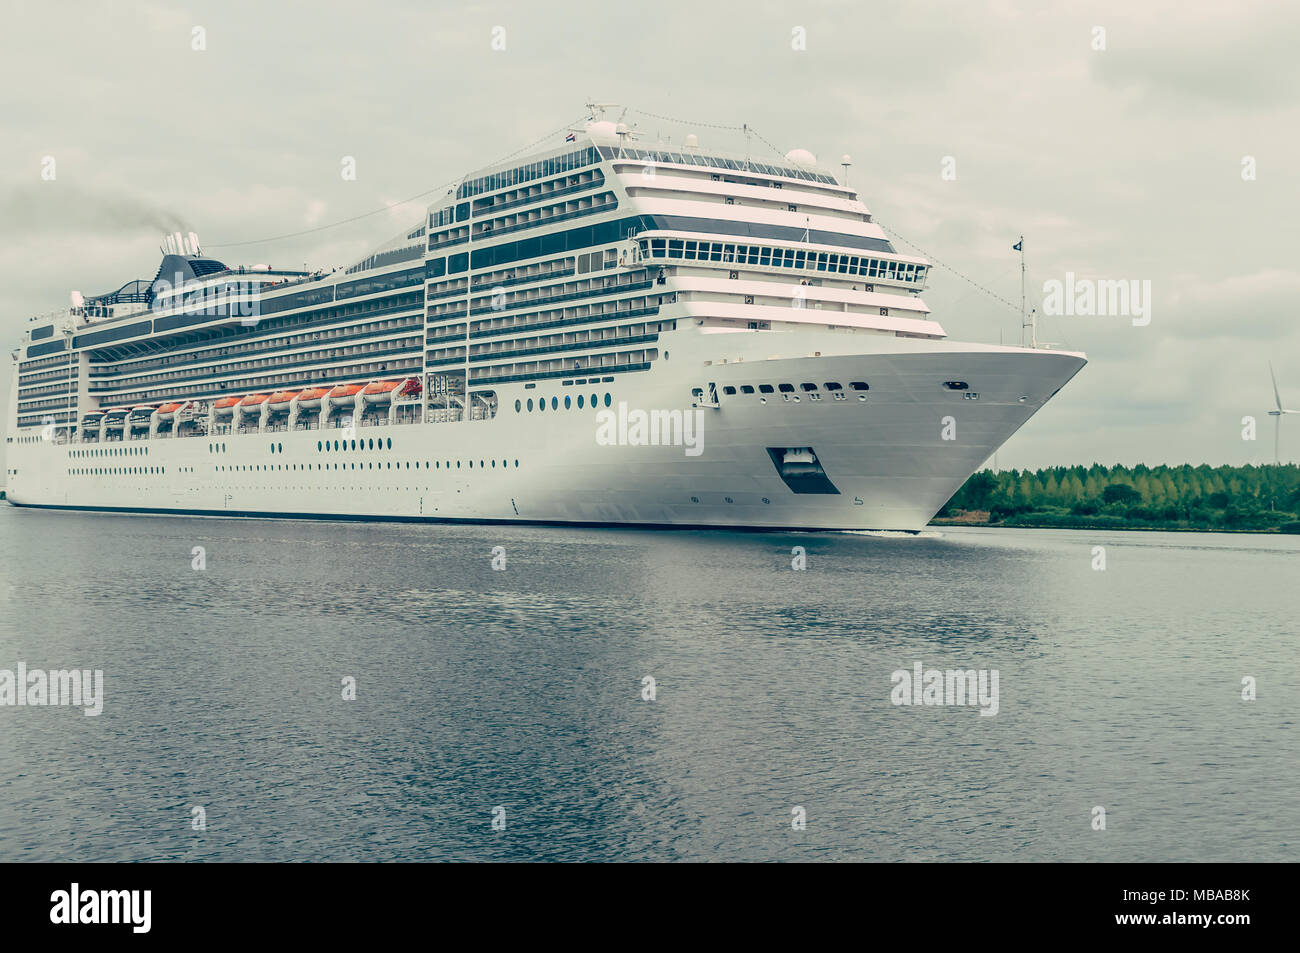 a large cruise ship sails through the canal - Stock Image